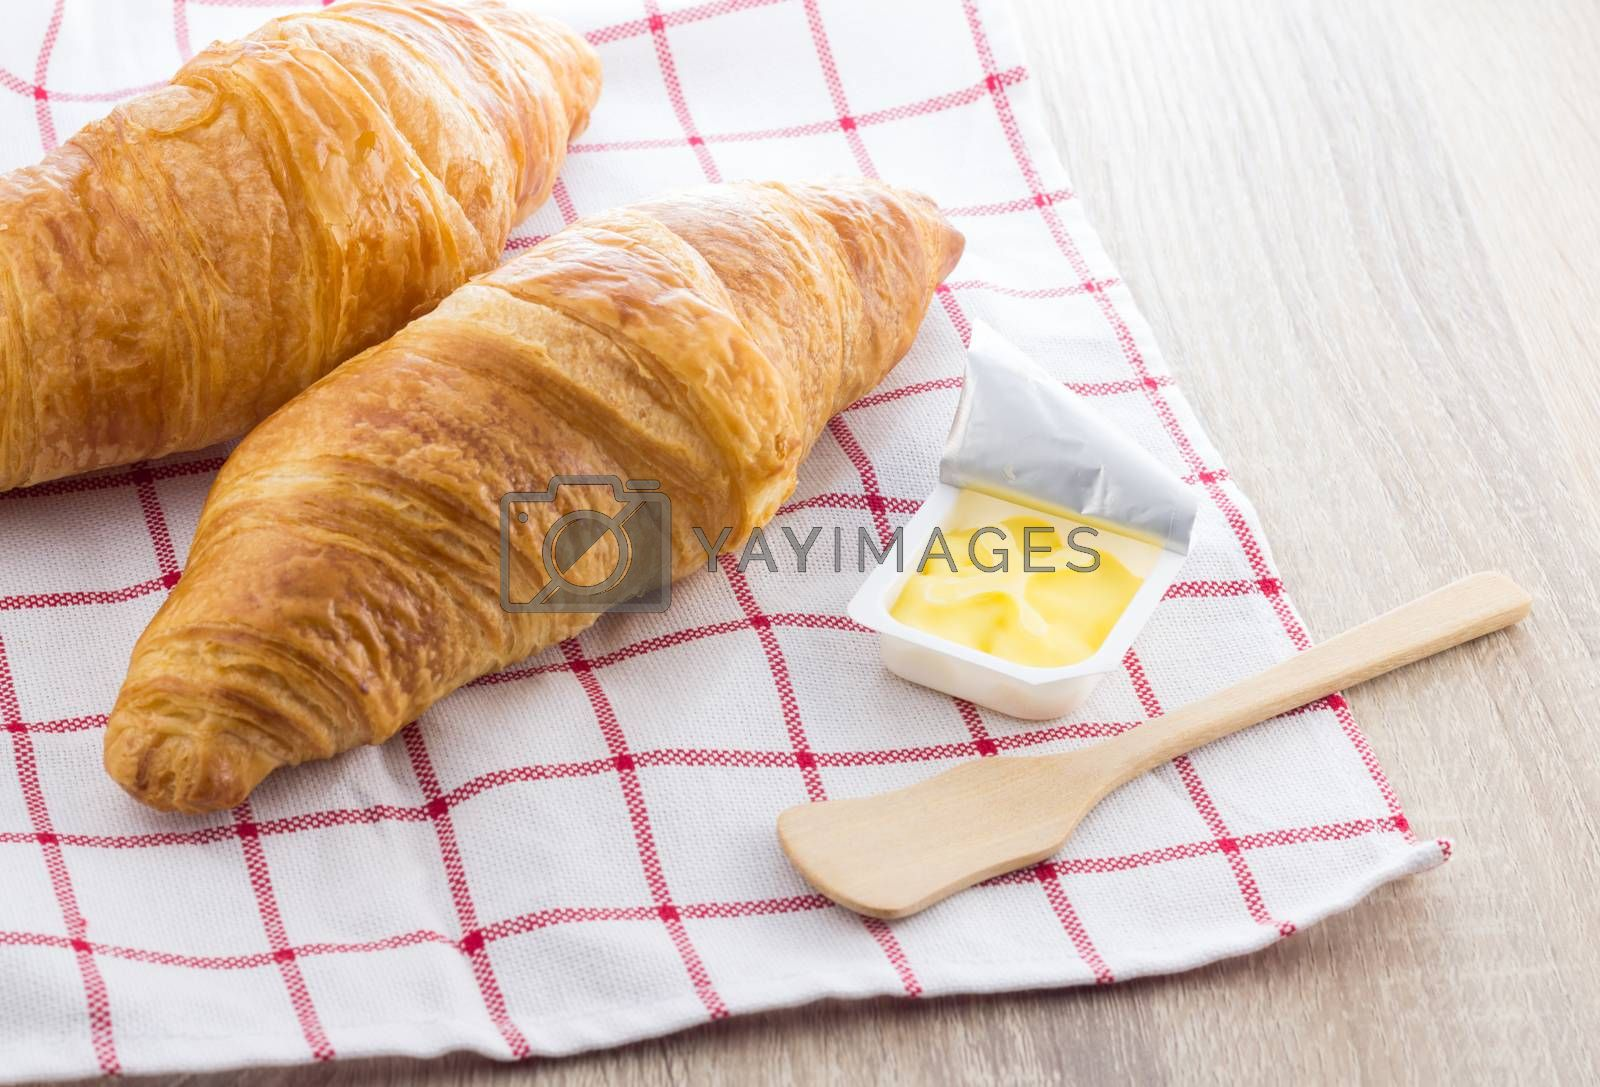 French croissant and butter on wooden background